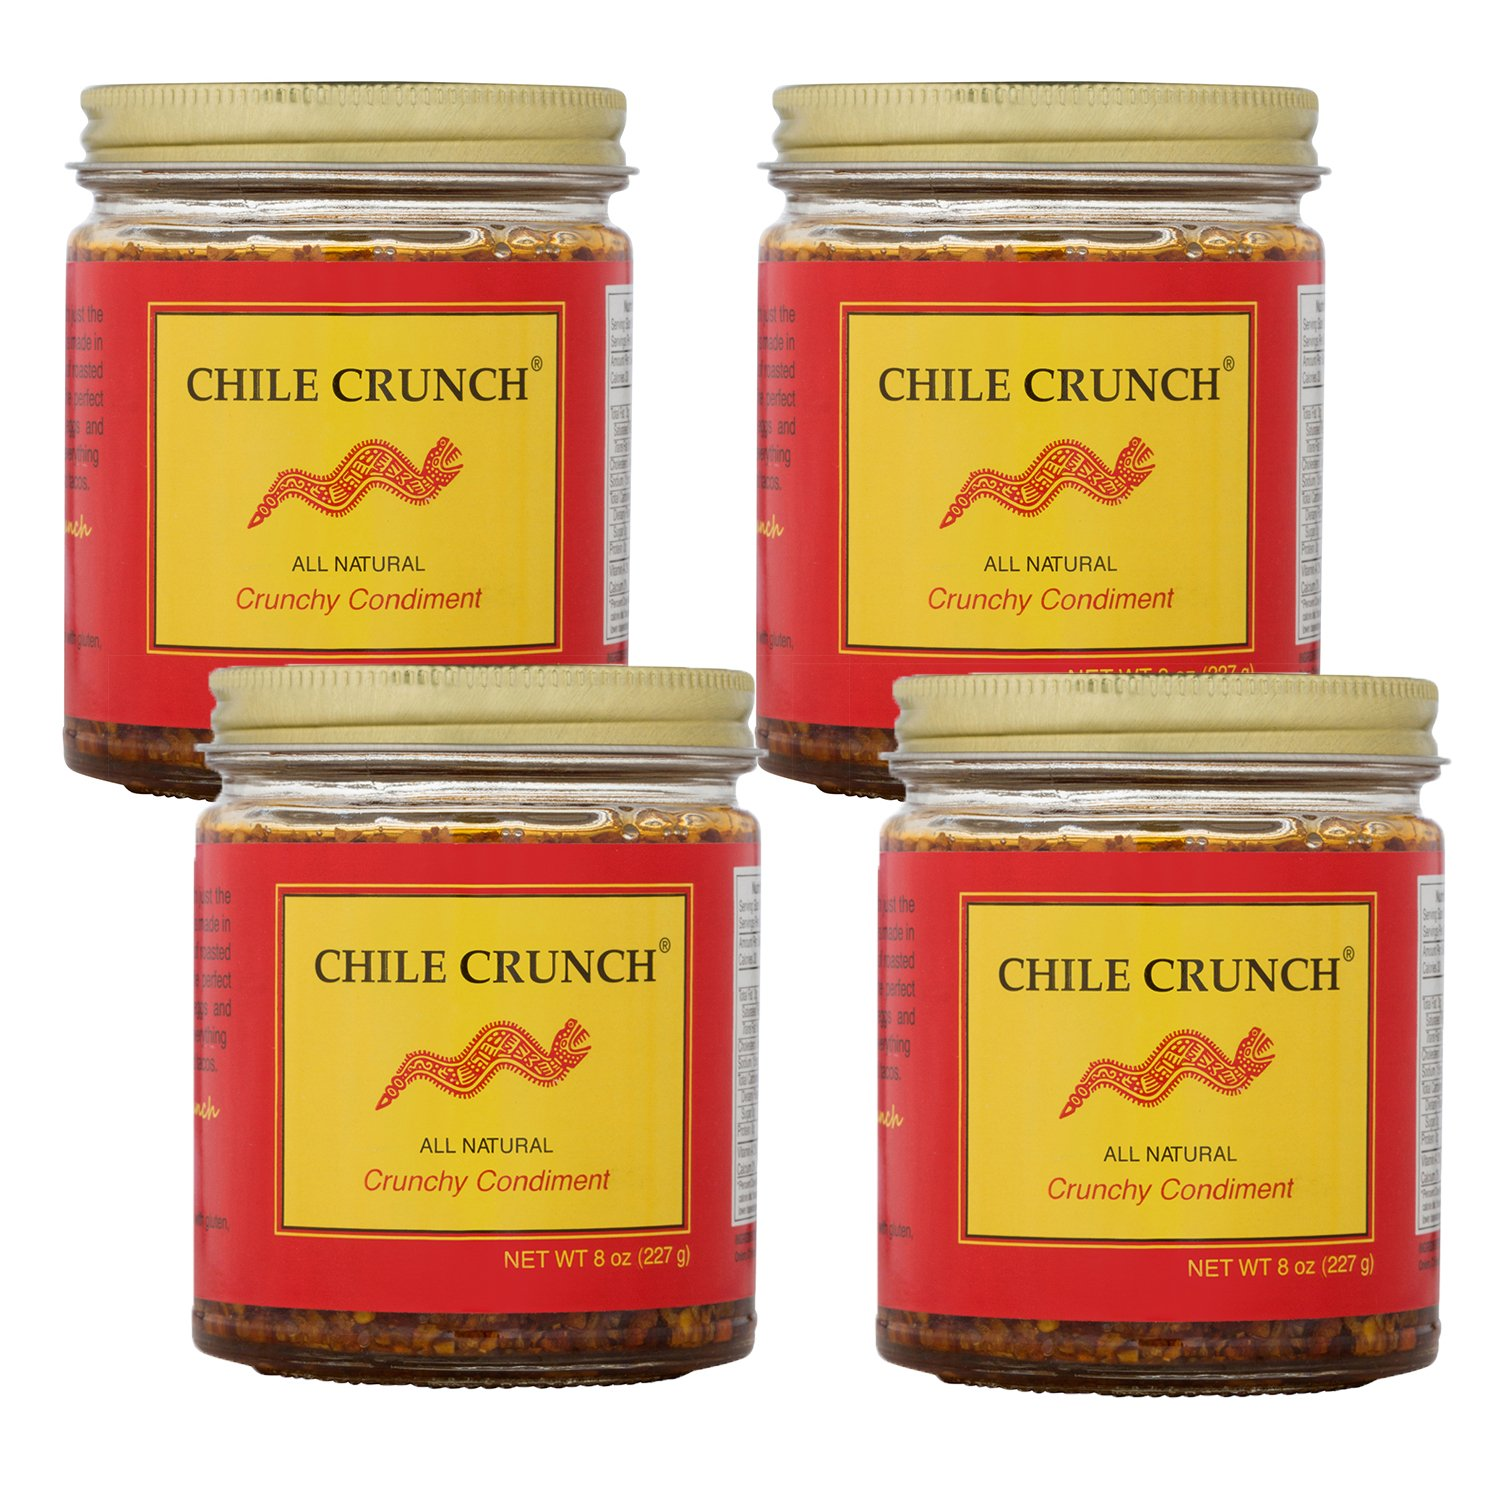 Chile Crunch - An All Natural Crunchy Condiment (Original) - 4 Pack by Chile Crunch